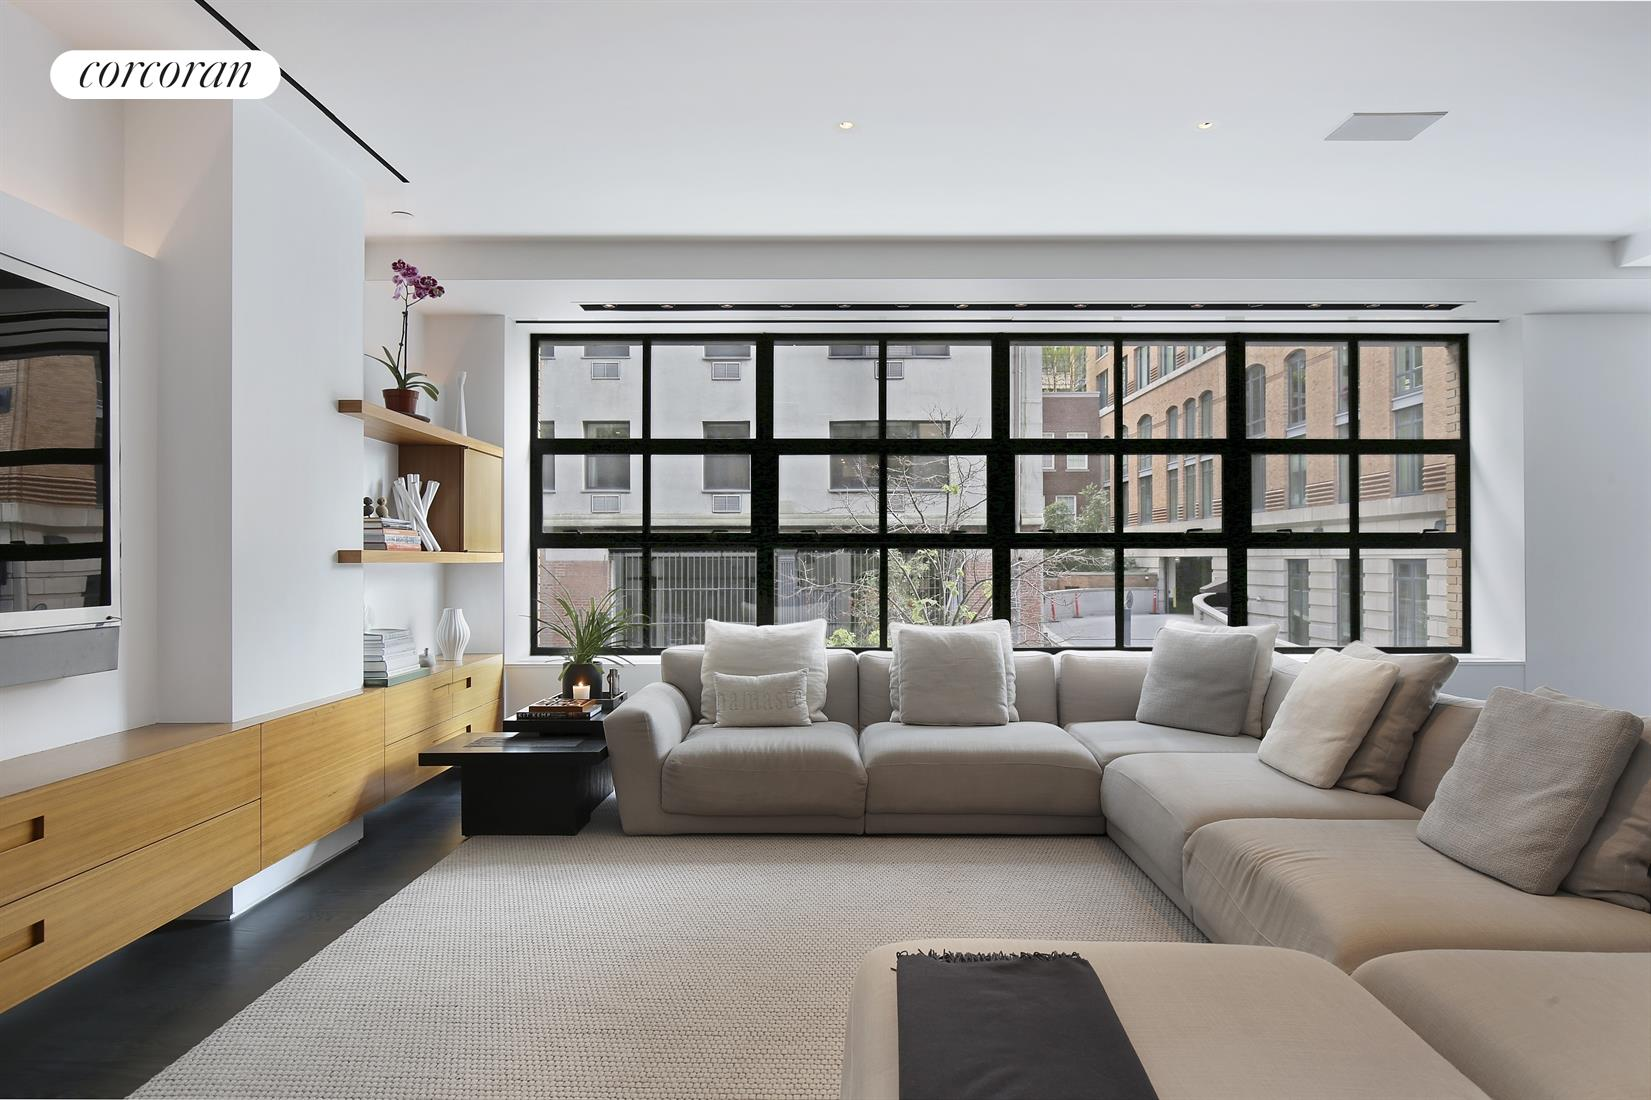 The allure of the West Village beckons at 397 West 12th Street!  An astute attention to detail was taken by well known designer Deborah Berke in building out this incredible custom home with tremendous flow and sensibility.  A full floor 4 bedroom 3.5 bath condominium in Manhattan's West Village, the home sprawls out over 3600sf with rare proportions boasting a true great room boasting an incredible 62 linear feet of lofty entertaining space!  Entertaining opportunities abound in this massive space comprised of an open plan living room, media room and dining room and a kitchen thoughtfully designed and outfitted for a true chef!  The space is dressed with beautiful south facing casement windows allowing for lots of direct sun to pour in with a corner window facing west providing peaks of the Hudson River, and stunning sunsets!  The custom kitchen features a cook center with sleek stainless steel back splash, lots of counter space, specialty appliance storage, spice bins, storage pantries,double Miele ovens, ventilation over a 6 burner Wolf cook top and grill, LED under cabinet lighting and an 11.5ft center island with double Bosch dishwashers and an abundance of storage including pull out pantries, pot, china and flatware drawers and more.  The home is run by a mobile Savant system which can open up or shut down the household with the touch of one button, and controls air conditioning, lighting, surround sound and blinds.  Off of the media area enjoy a double home office with sliding pocket door which hides the space when entertaining.  The bedroom wing features 3 bedrooms and a den or 4th bedroom with 3 full baths.  The master bedroom is spacious, very bright and modern with two custom walk-in closets and an en suite master bathroom with double vanity and radiant heated floors.  The second bedroom faces north with an unobstructed exposure over the rear of the building keeping things ultra quiet and yet very bright and open, and features an ensuite windowed bathroom